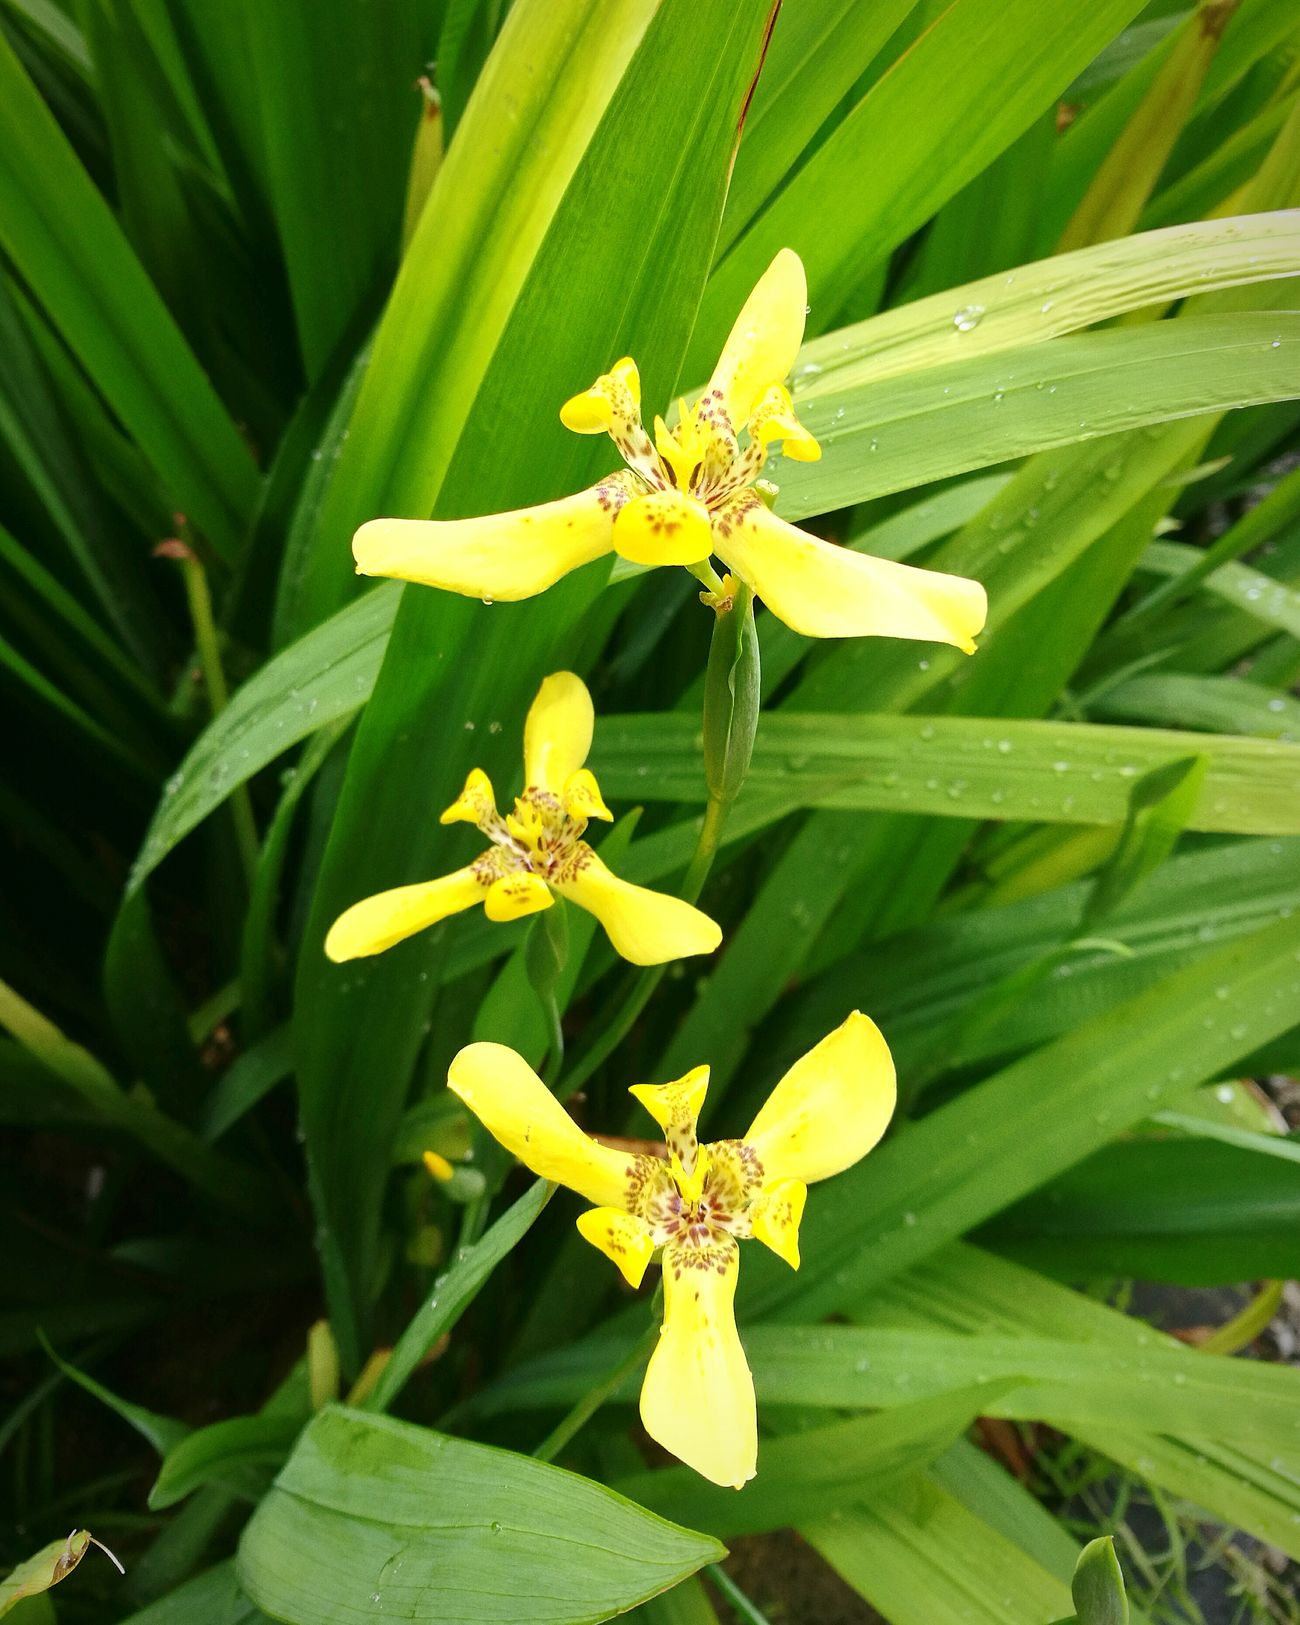 Flower Freshness Growth Yellow Close-up Petal Beauty In Nature Flower Head Nature Green Color Fragility Blooming Blossom In Bloom Orchids Orchid Orchid Blossoms Orchid Flower Orchids Bestflowershot Bestflowerpic